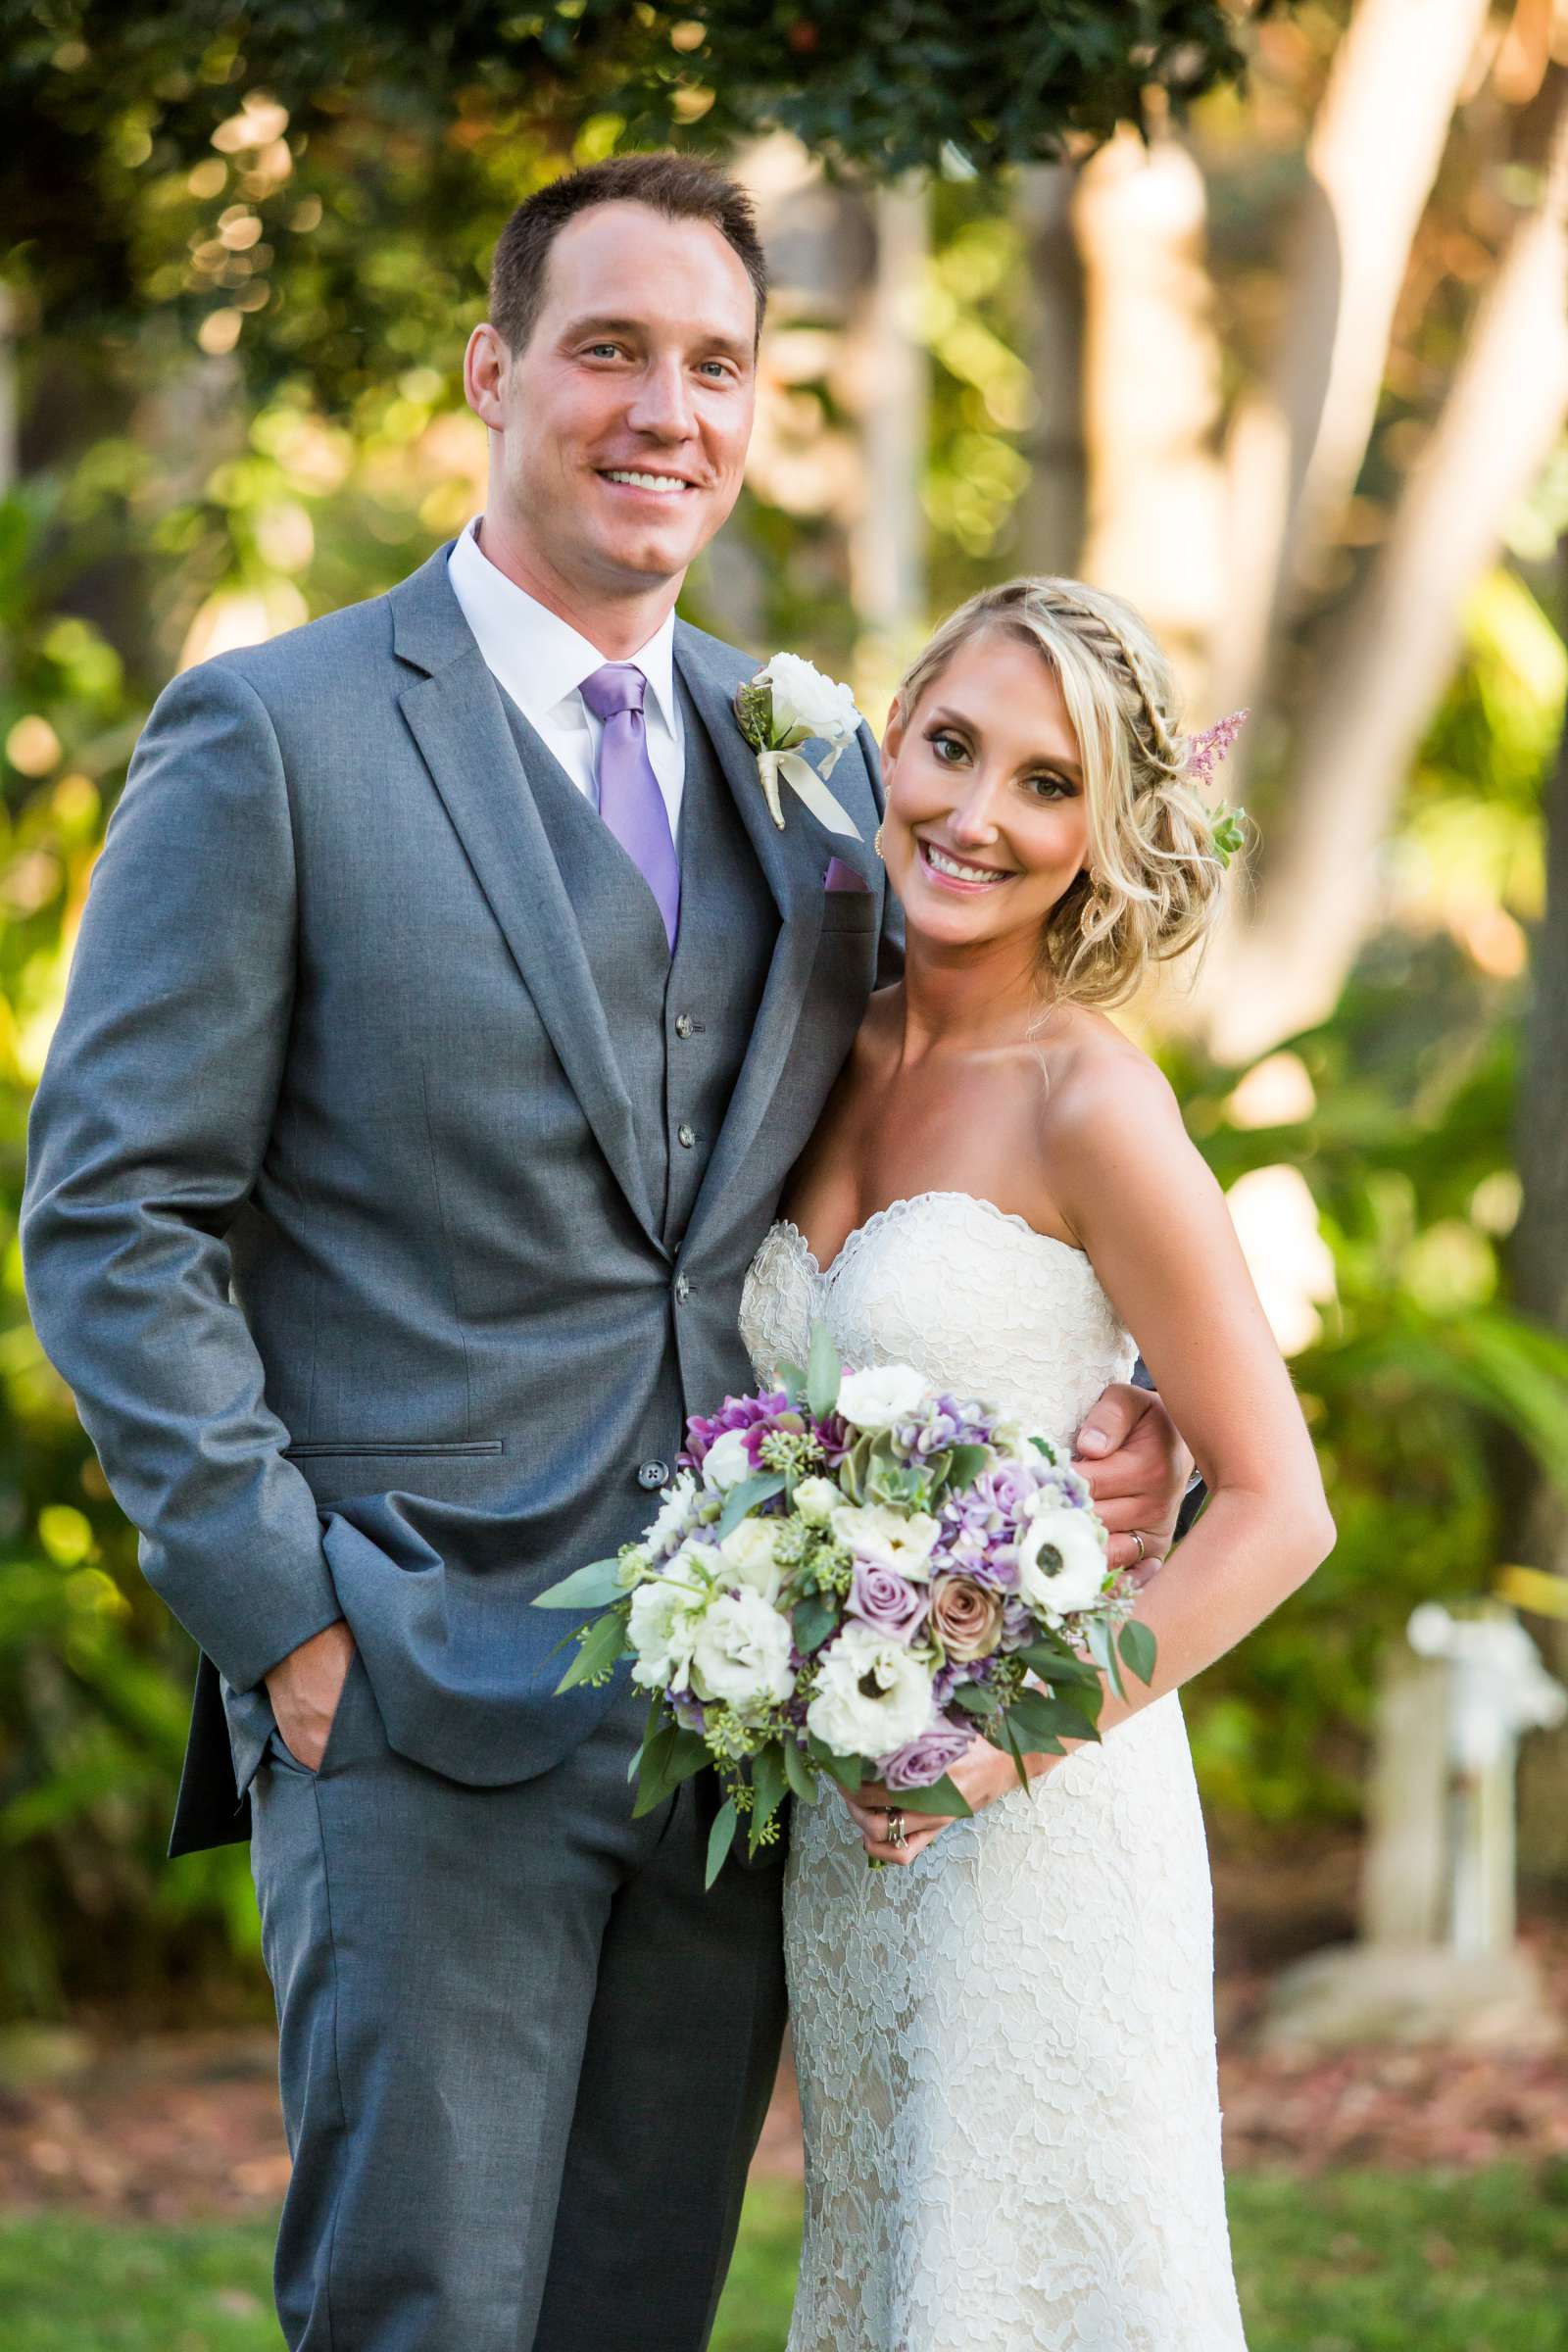 Paradise Point Wedding, Kimberly and Michael Wedding Photo #12 by True Photography